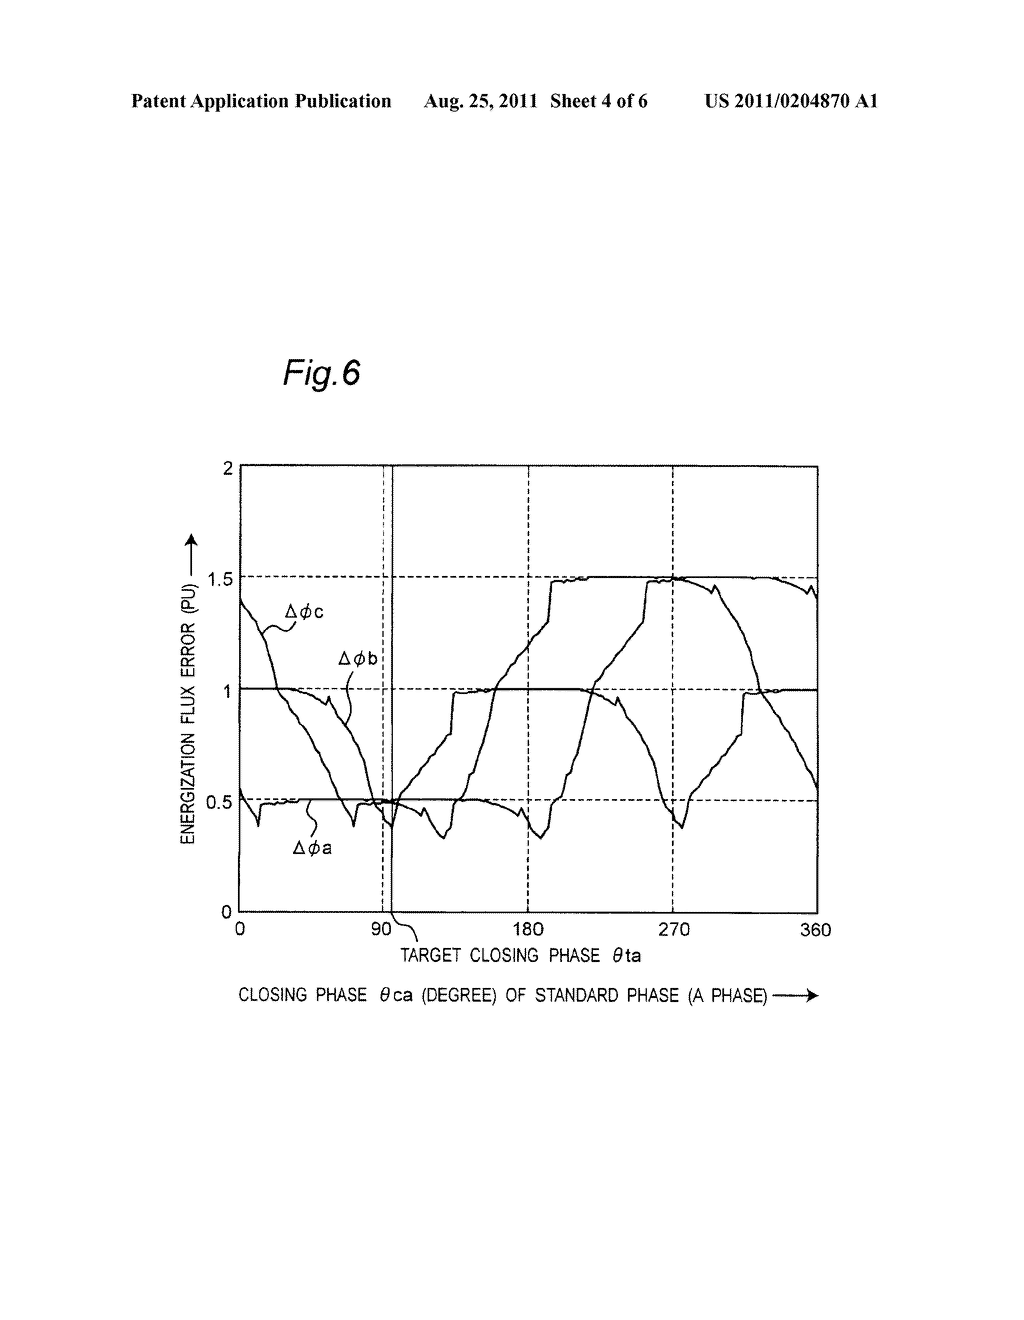 Transformer Inrush Current Suppression Apparatus With Function Of 3 Phase Wiring Diagram Breaker Three Based On Pre Arc Characteristic And Variation In Closing Time The Circuit Schematic